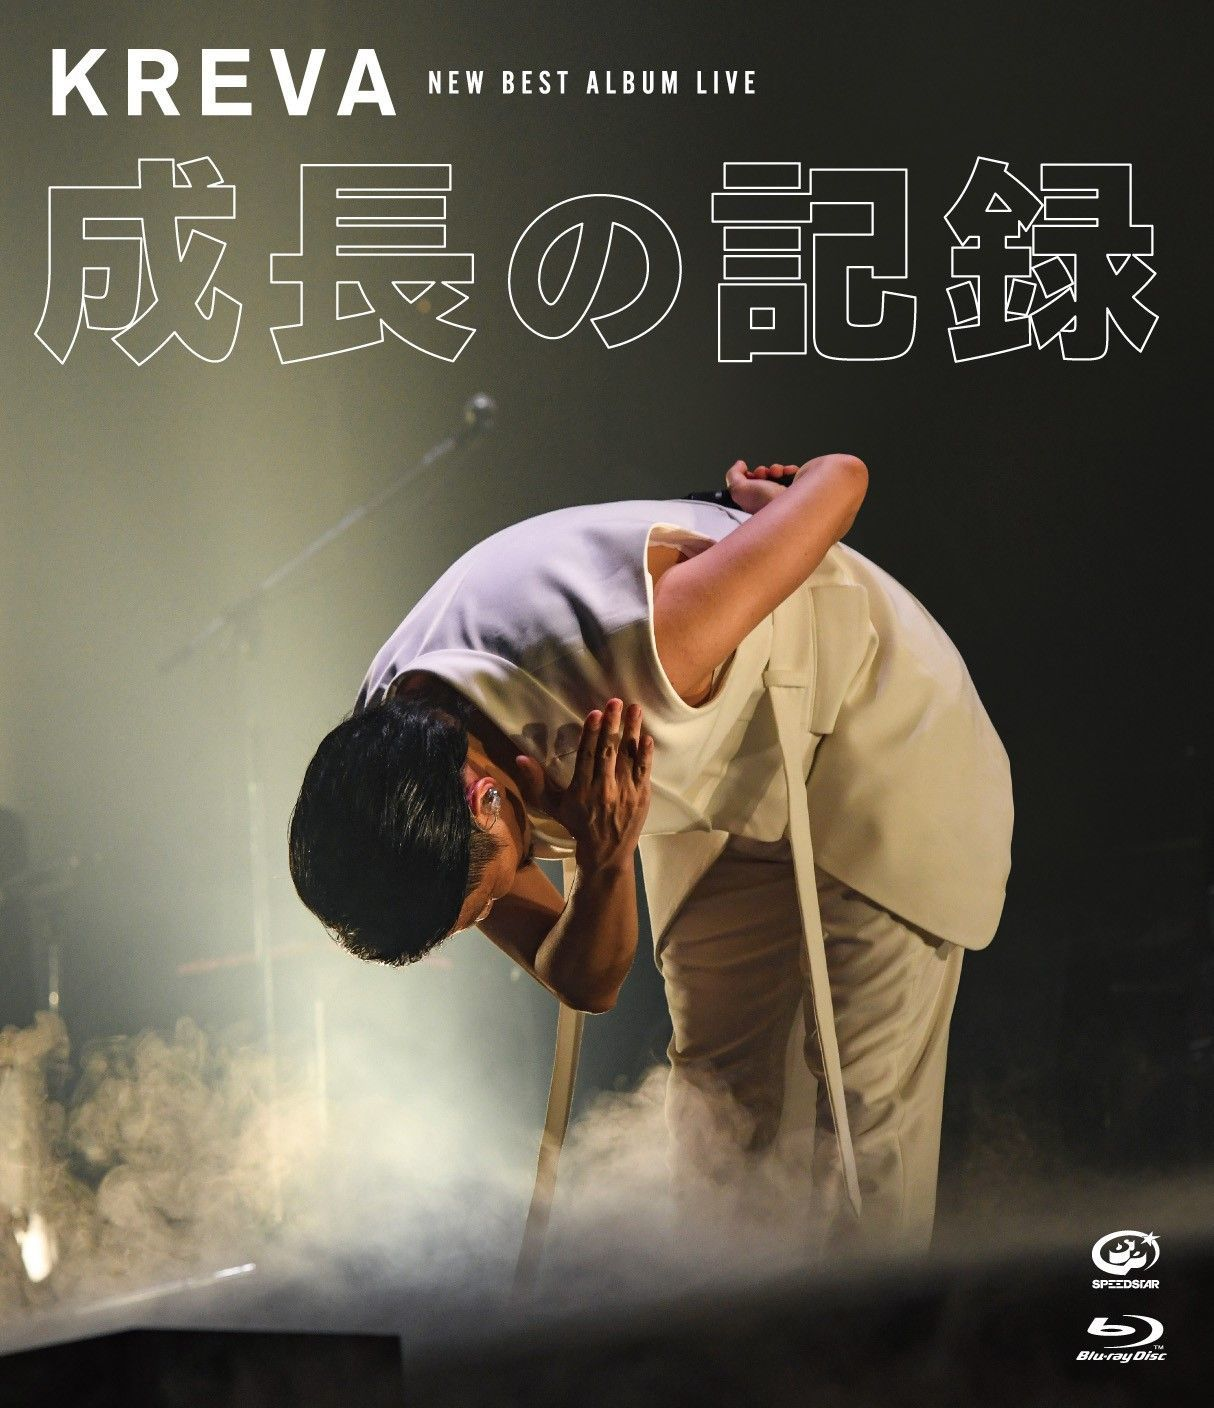 LIVE Blu-ray&DVD『NEW BEST ALBUM LIVE -成長の記録- at 日本武道館』